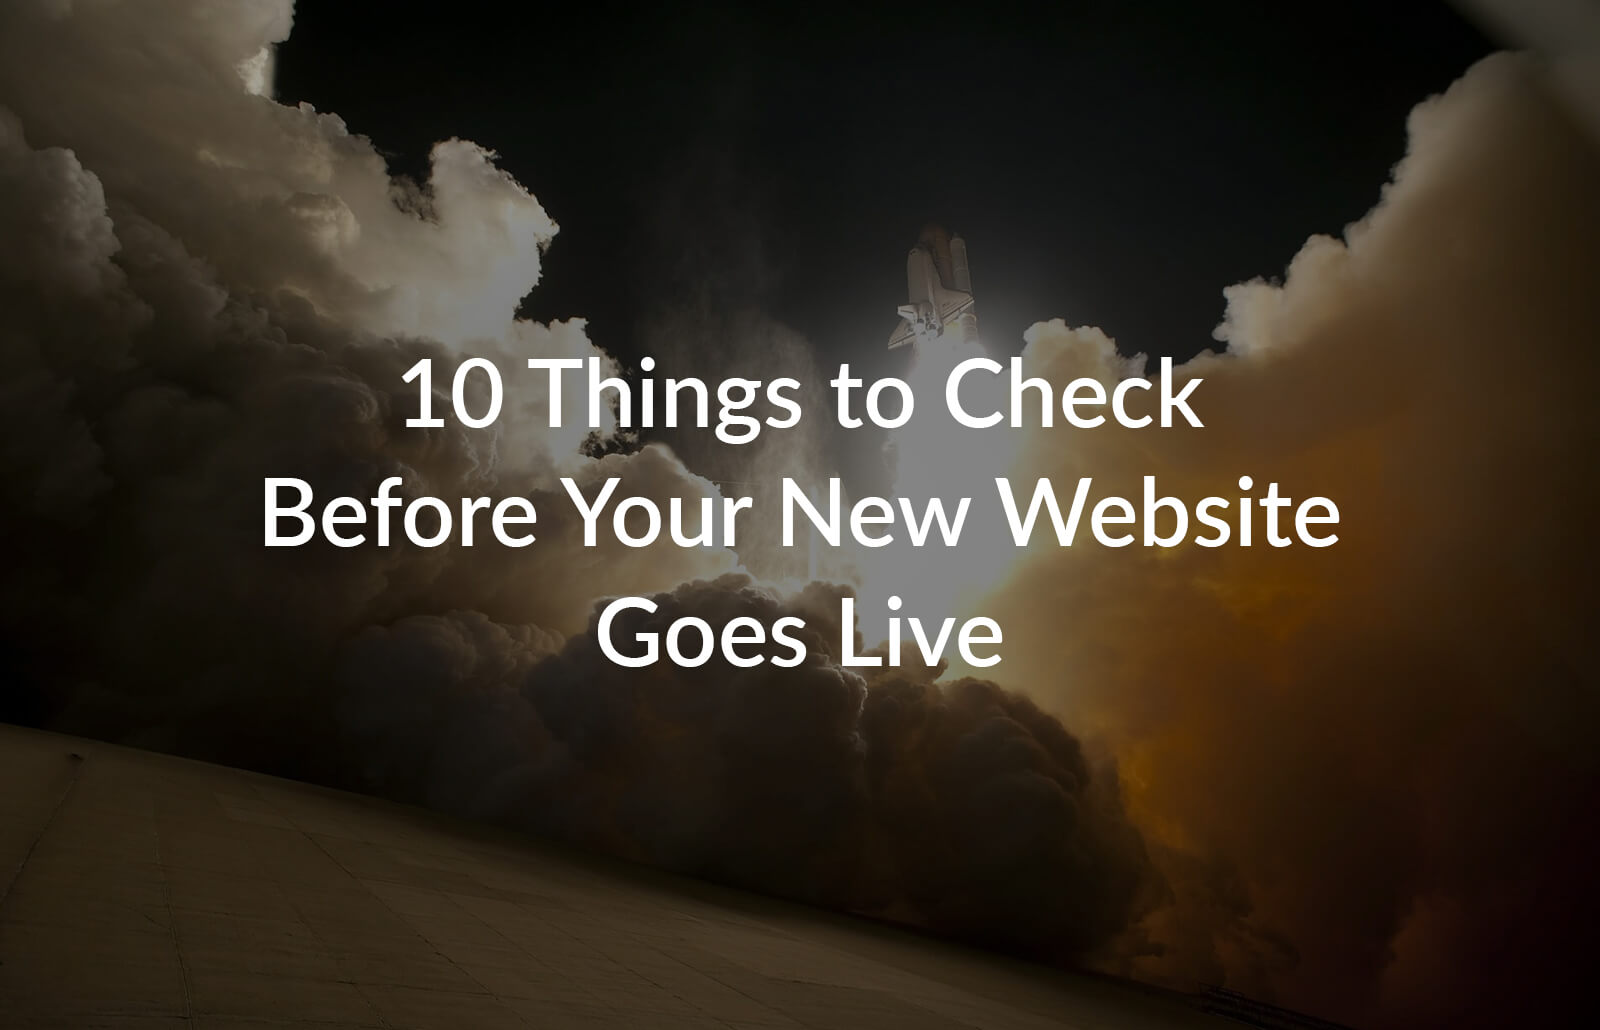 10 things to check before your new website goes live